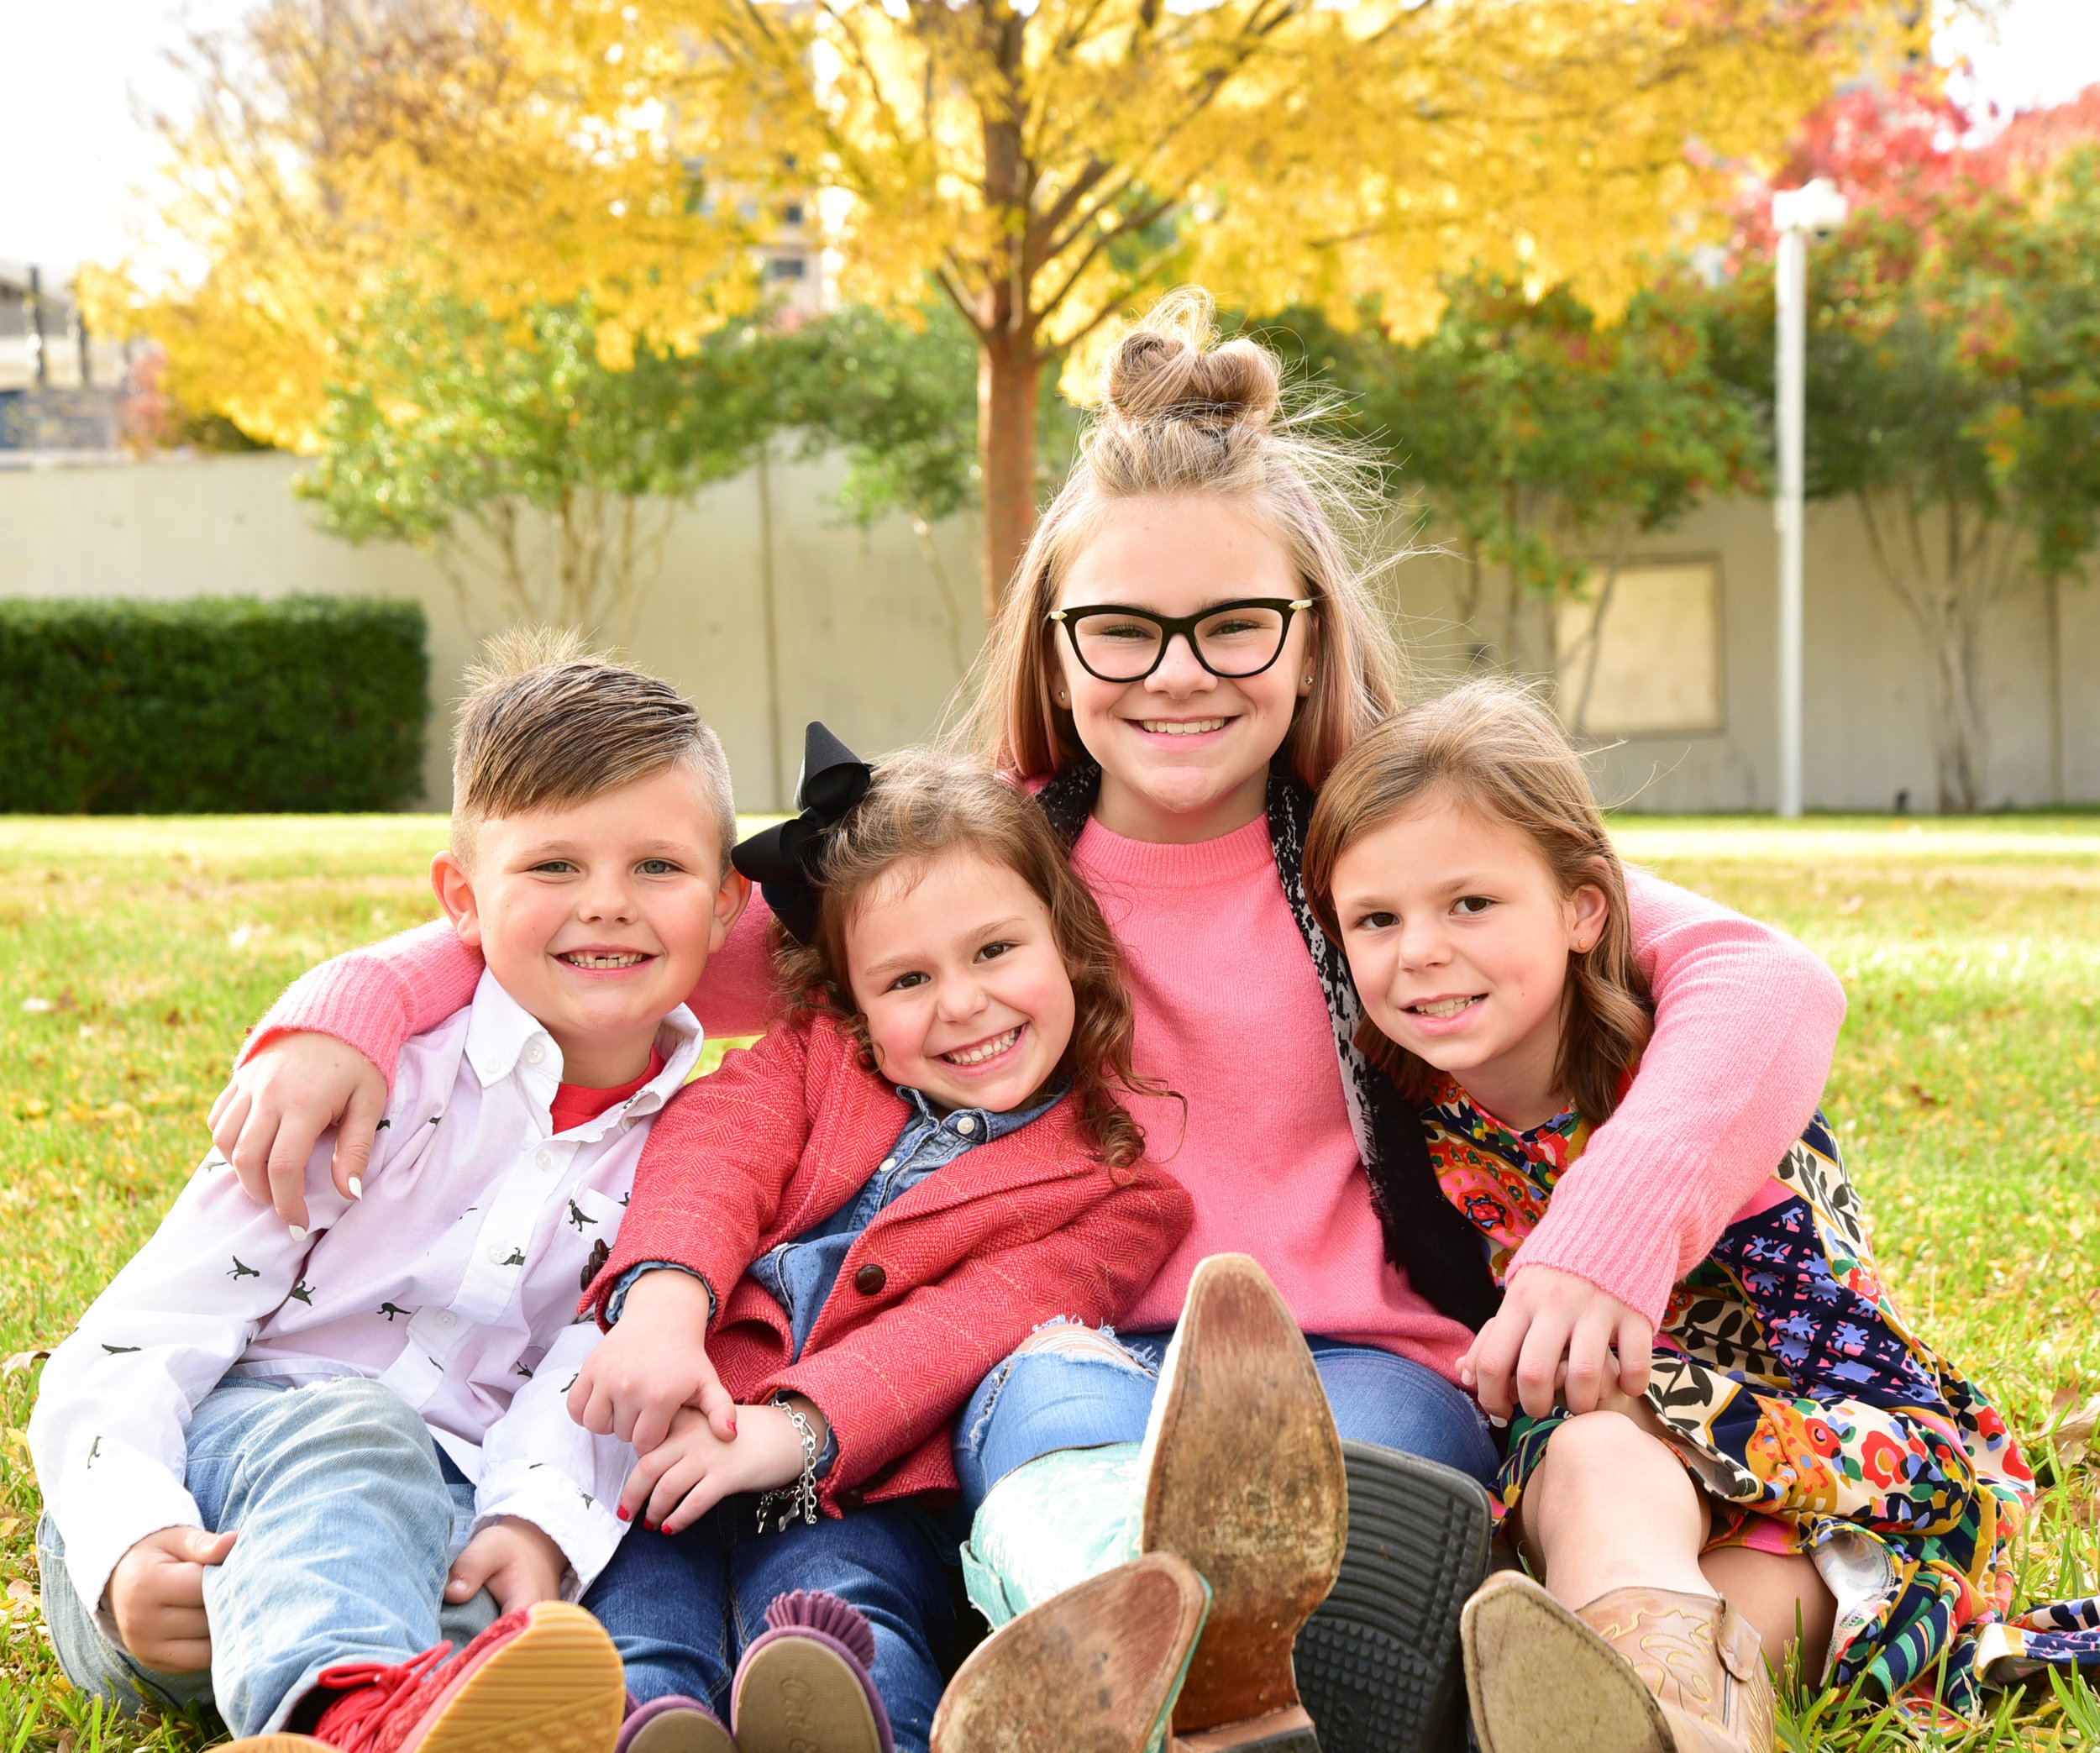 Family Photography in Fort Worth, Texas